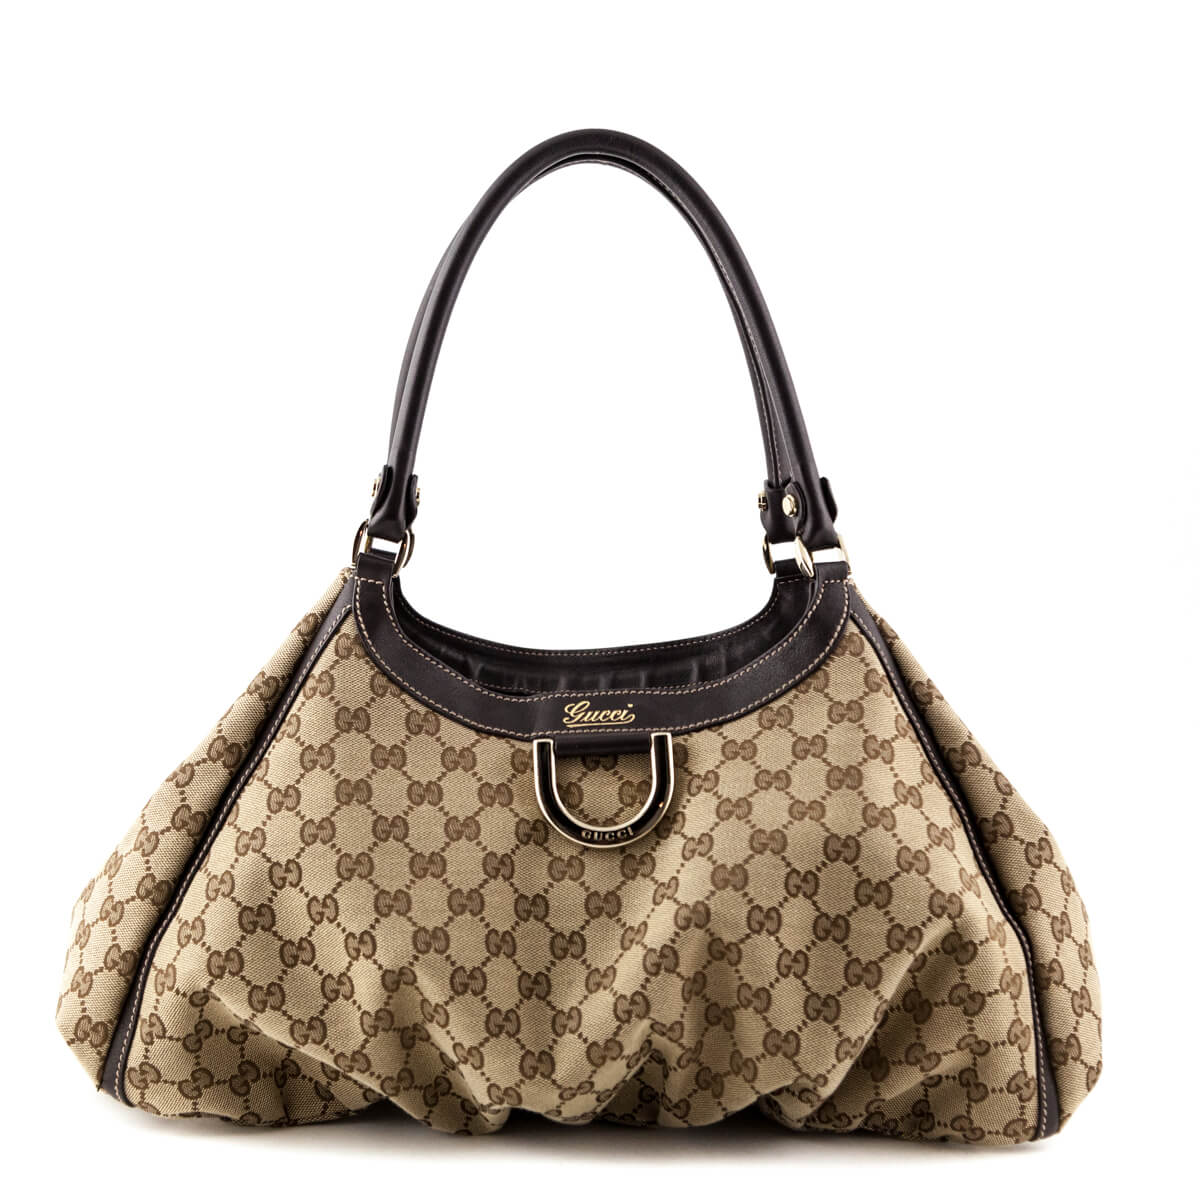 5a6443baf64 Gucci GG Large D-Ring Hobo Bag - LOVE that BAG - Preowned Authentic  Designer ...